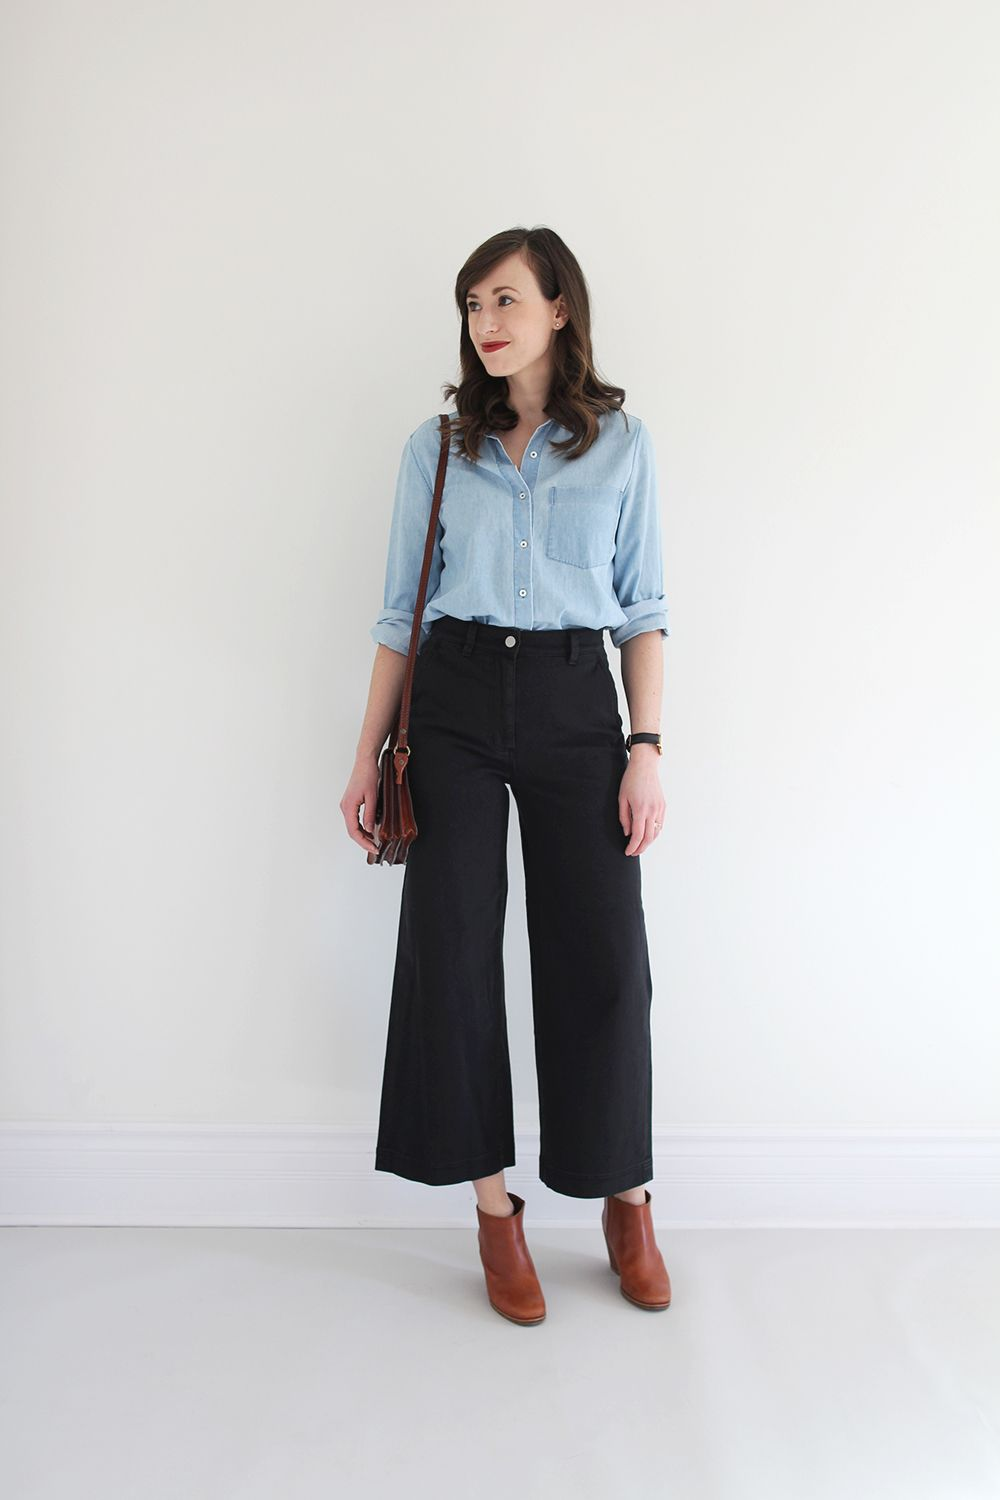 5b3a696162a Style Bee - Everlane Wide Crop Pant - classic fits. color of the shirt is a bit  muted